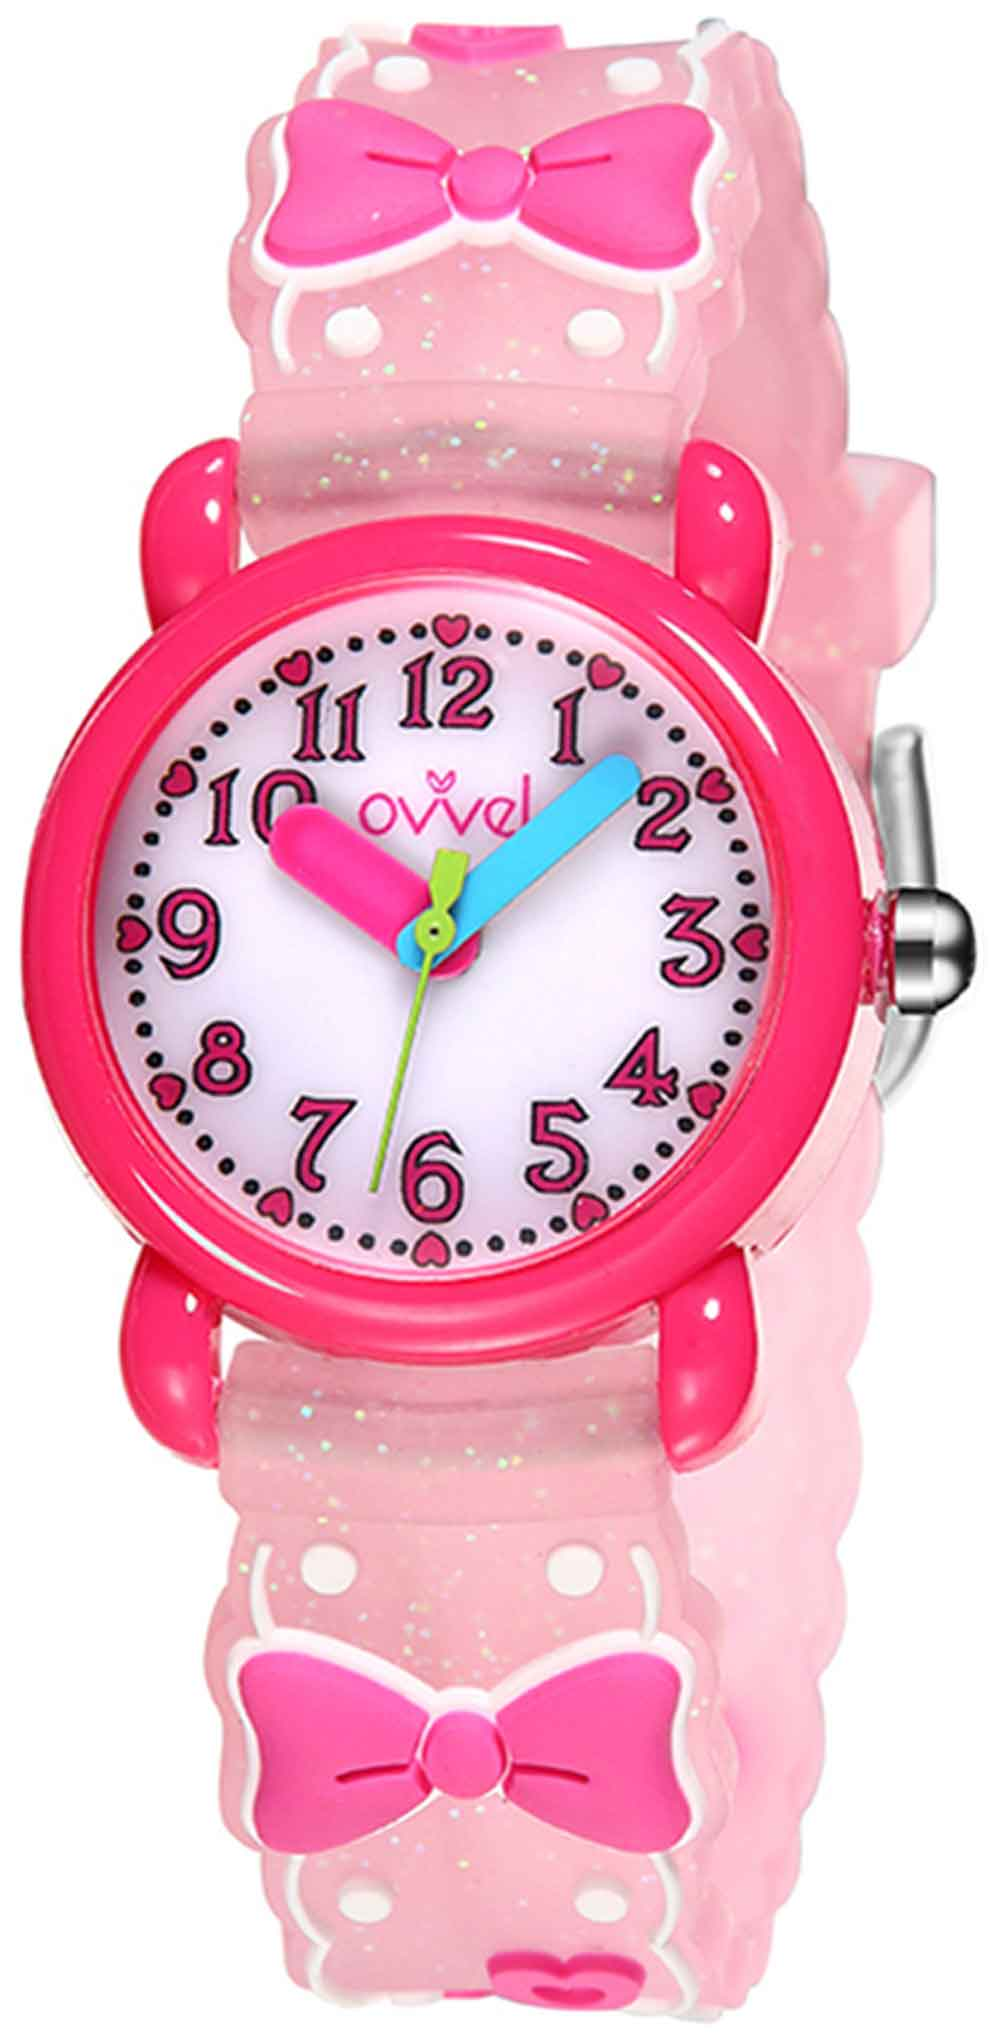 Watches for kids - Hot Pink Bows